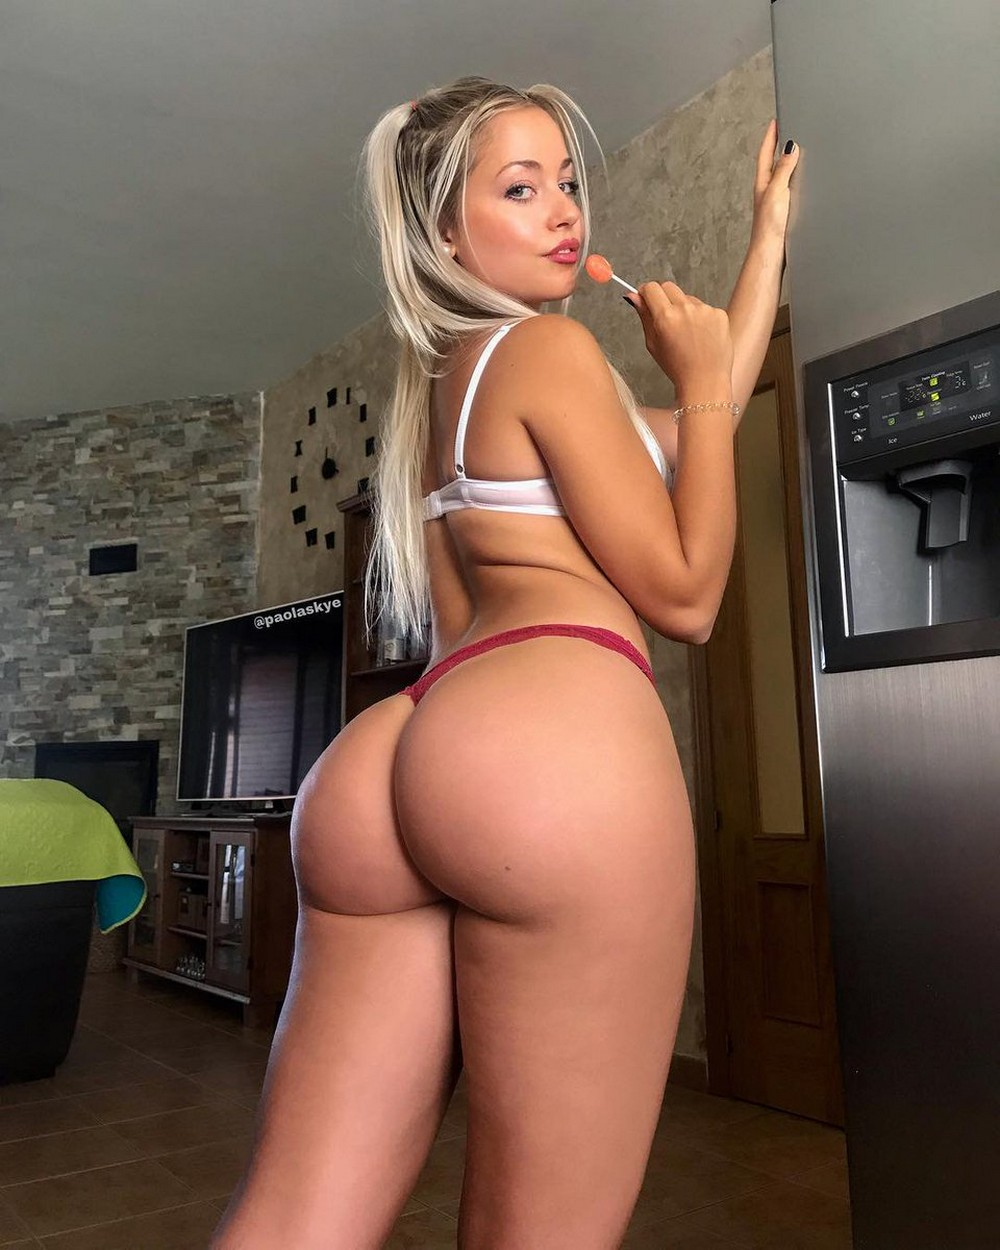 Hot Girls With Sexy Butts (35 Photos + 5 GIFs)